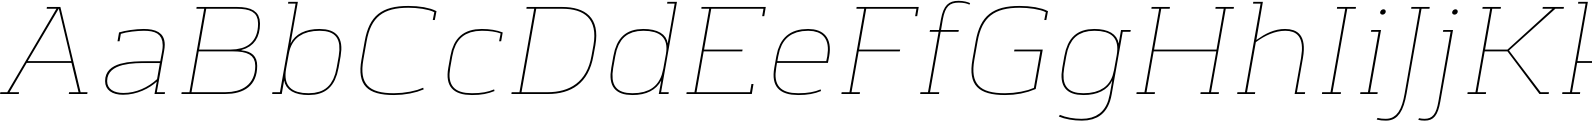 Chercher Hairline Slant Font